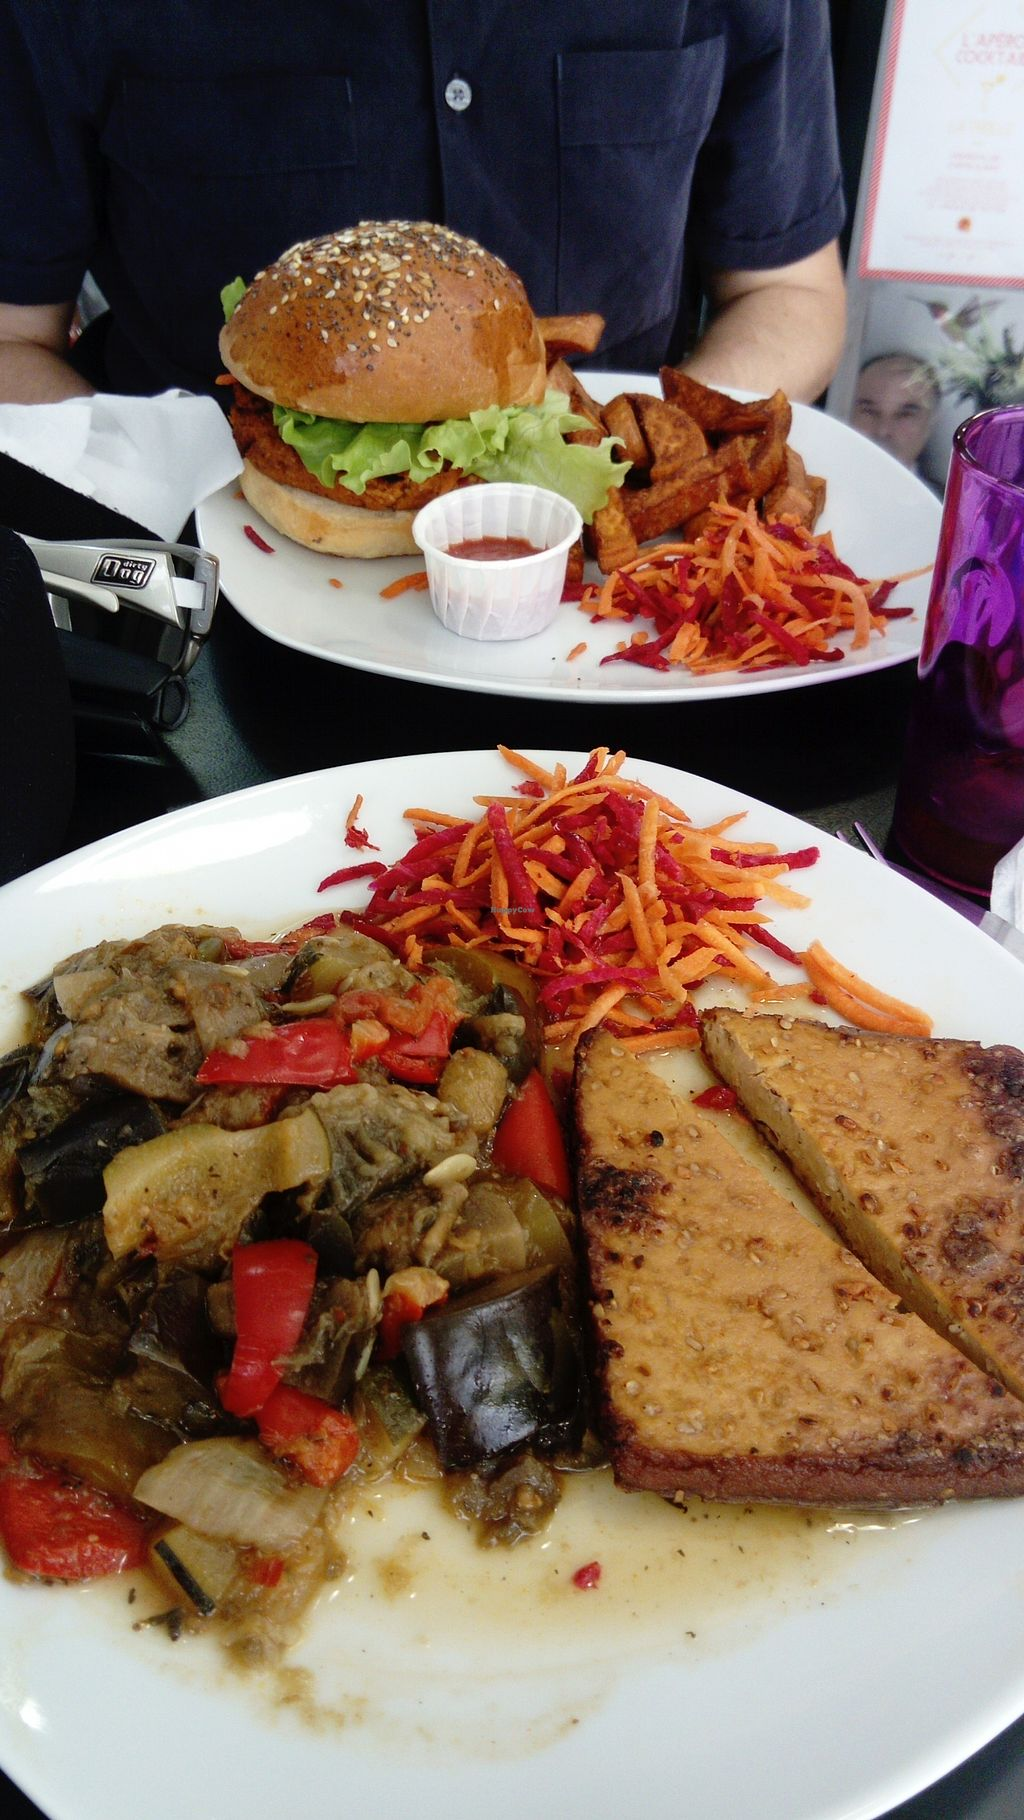 """Photo of Chic Planete  by <a href=""""/members/profile/DeniseR"""">DeniseR</a> <br/>Grilled Tofu and ratatouille.. Plus burger  <br/> June 21, 2017  - <a href='/contact/abuse/image/85341/271867'>Report</a>"""